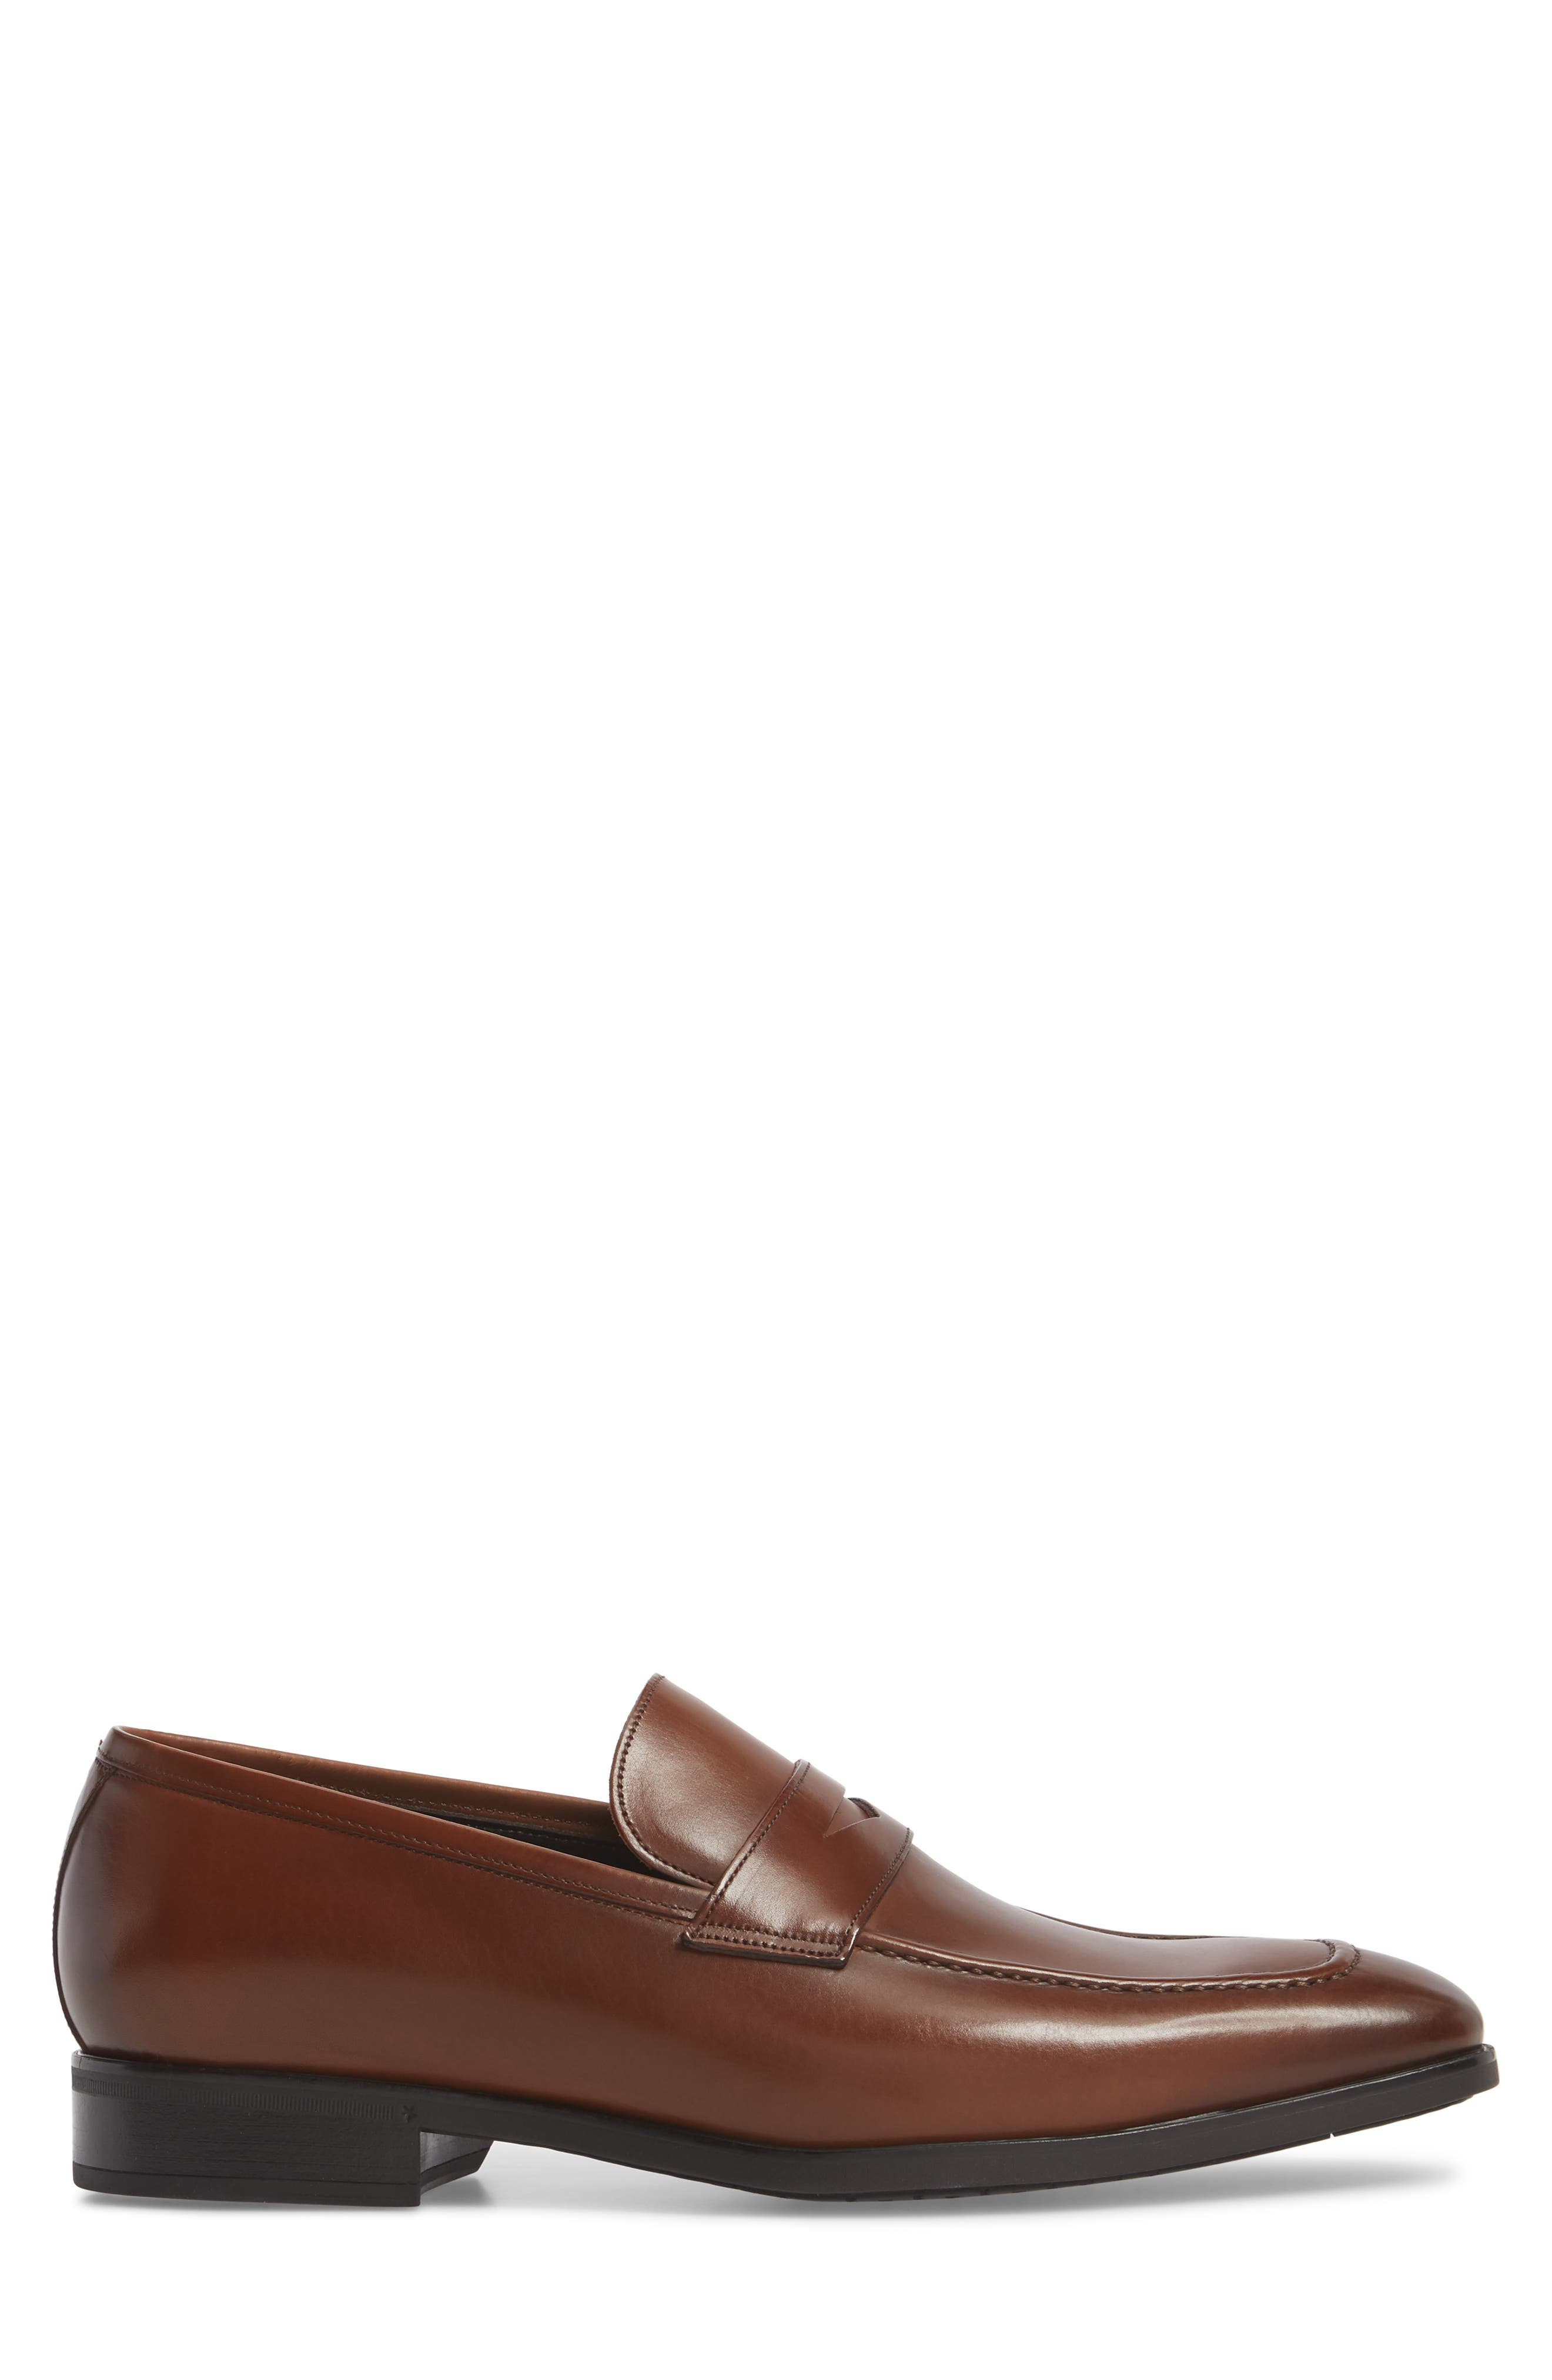 TO BOOT NEW YORK,                             Raleigh Apron Toe Penny Loafer,                             Alternate thumbnail 3, color,                             237